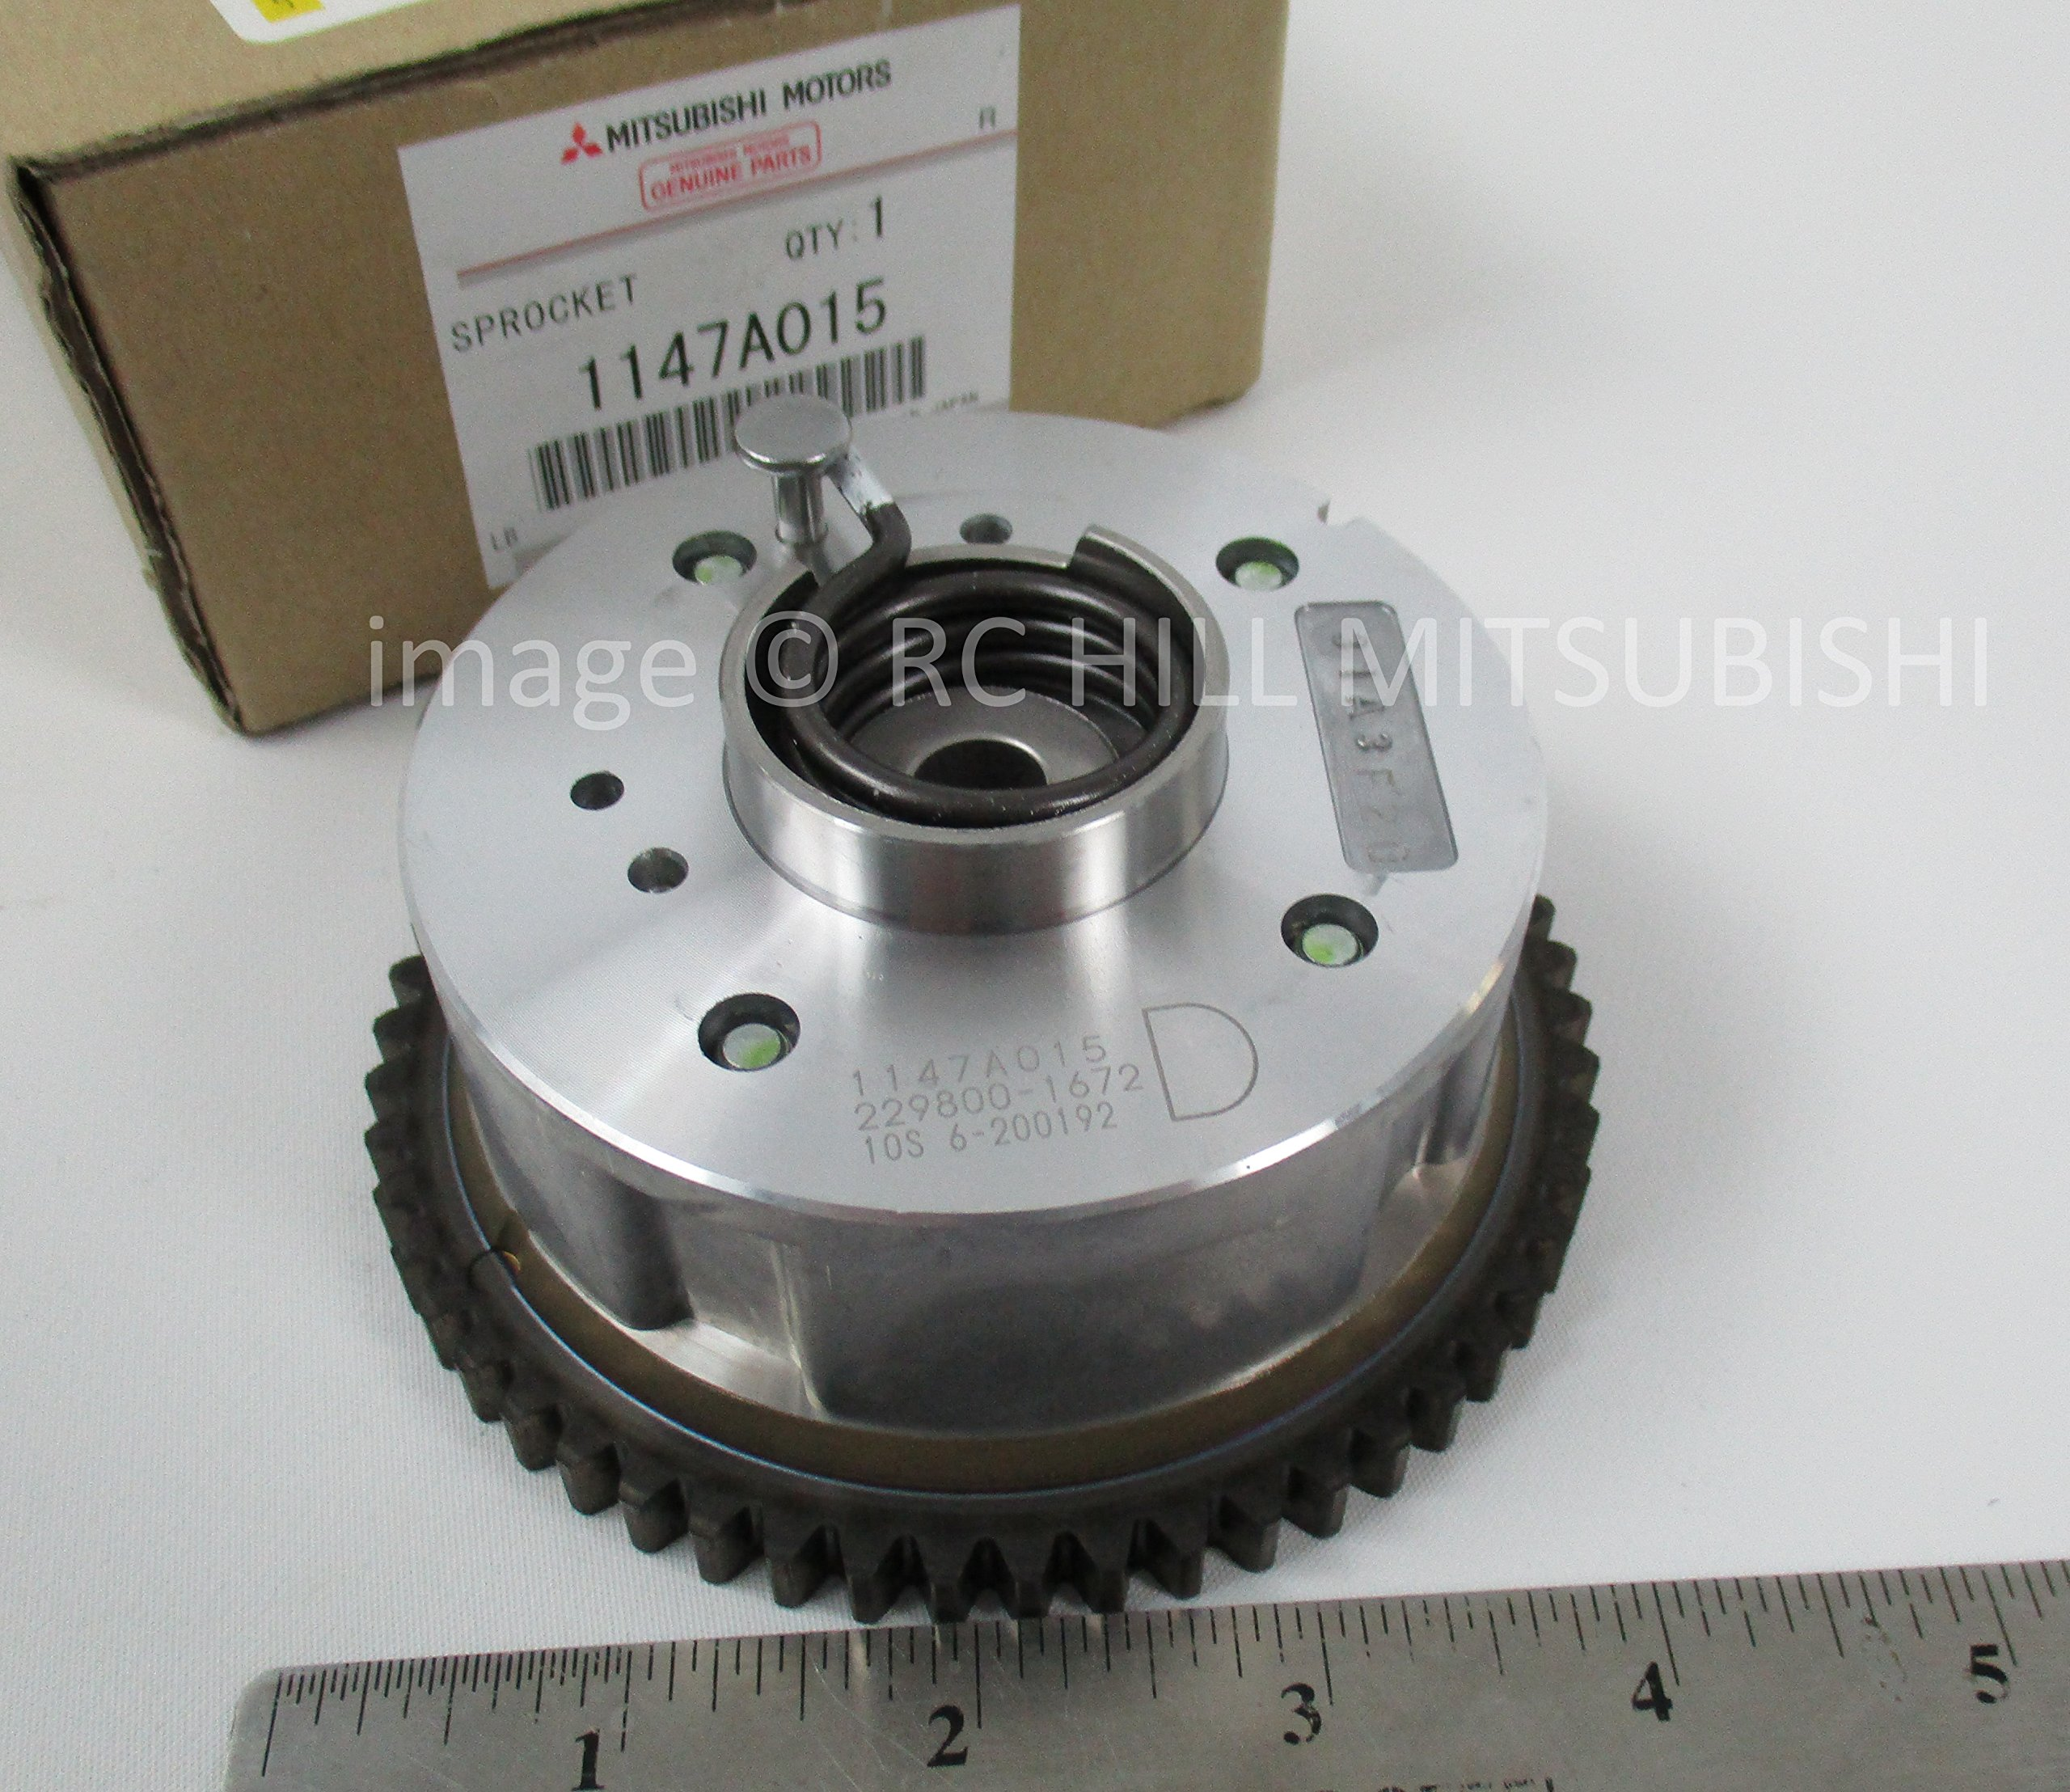 1147A015 GENUINE MITSUBISHI OEM FACTORY ORIGINAL SPROCKET LANCER & EVO 2.0L DOHC I4 MIVEC CAMSHAFT PLEASE SEND VIN# TO VERIFY ITEM APPLIES TO YOUR VEHICLE